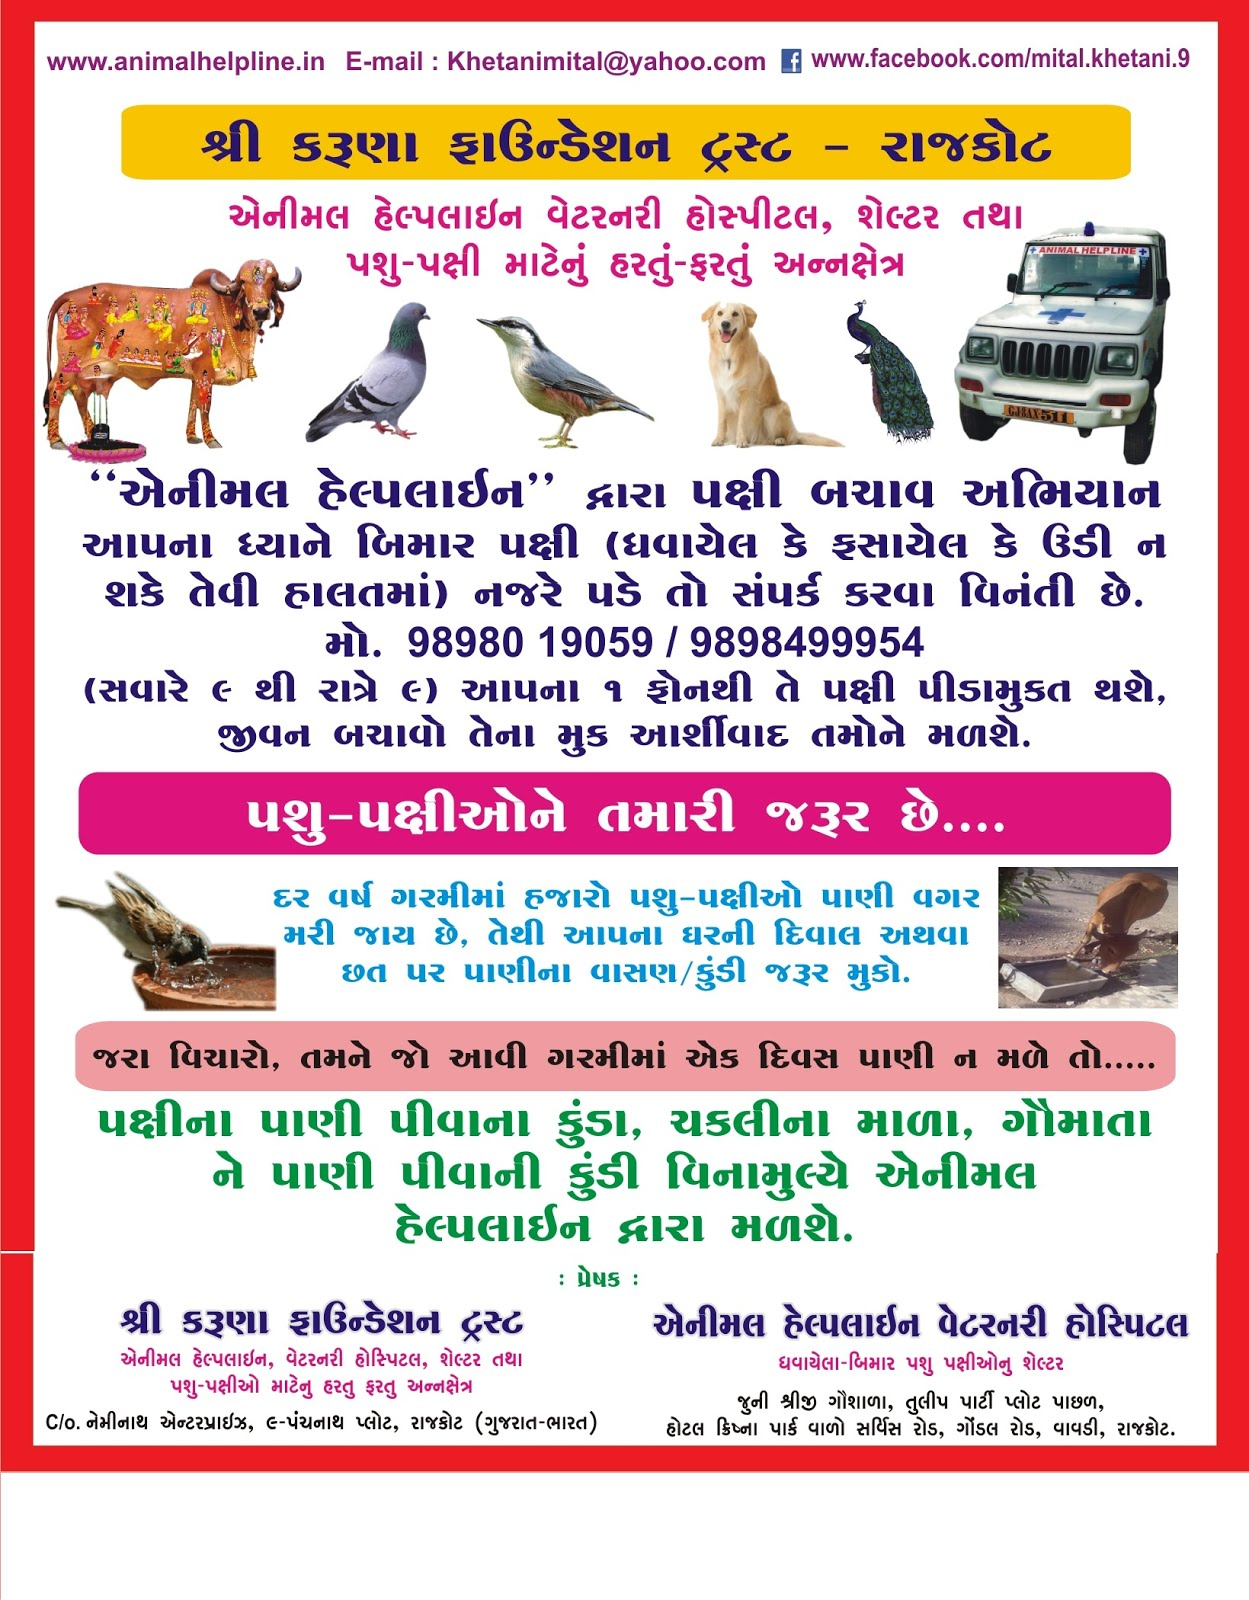 Animal Helpline - Rajkot